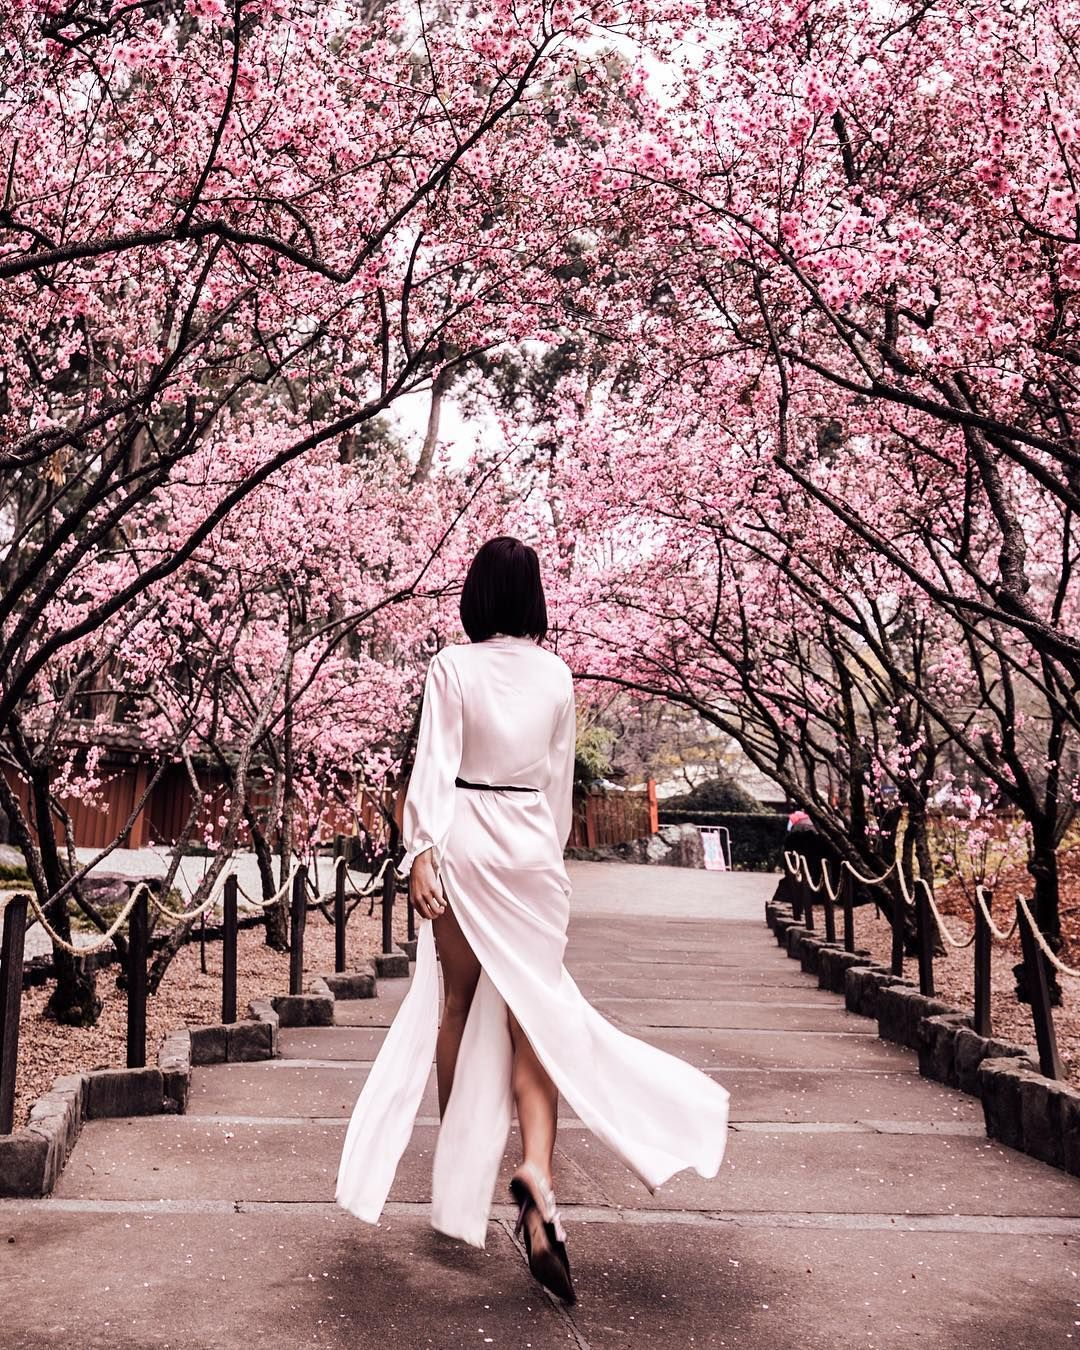 Catching The Last Of The Cherry Blossoms In Sydney Who Else Is A Spring Baby Spring Baby Cherry Blossom Blossom